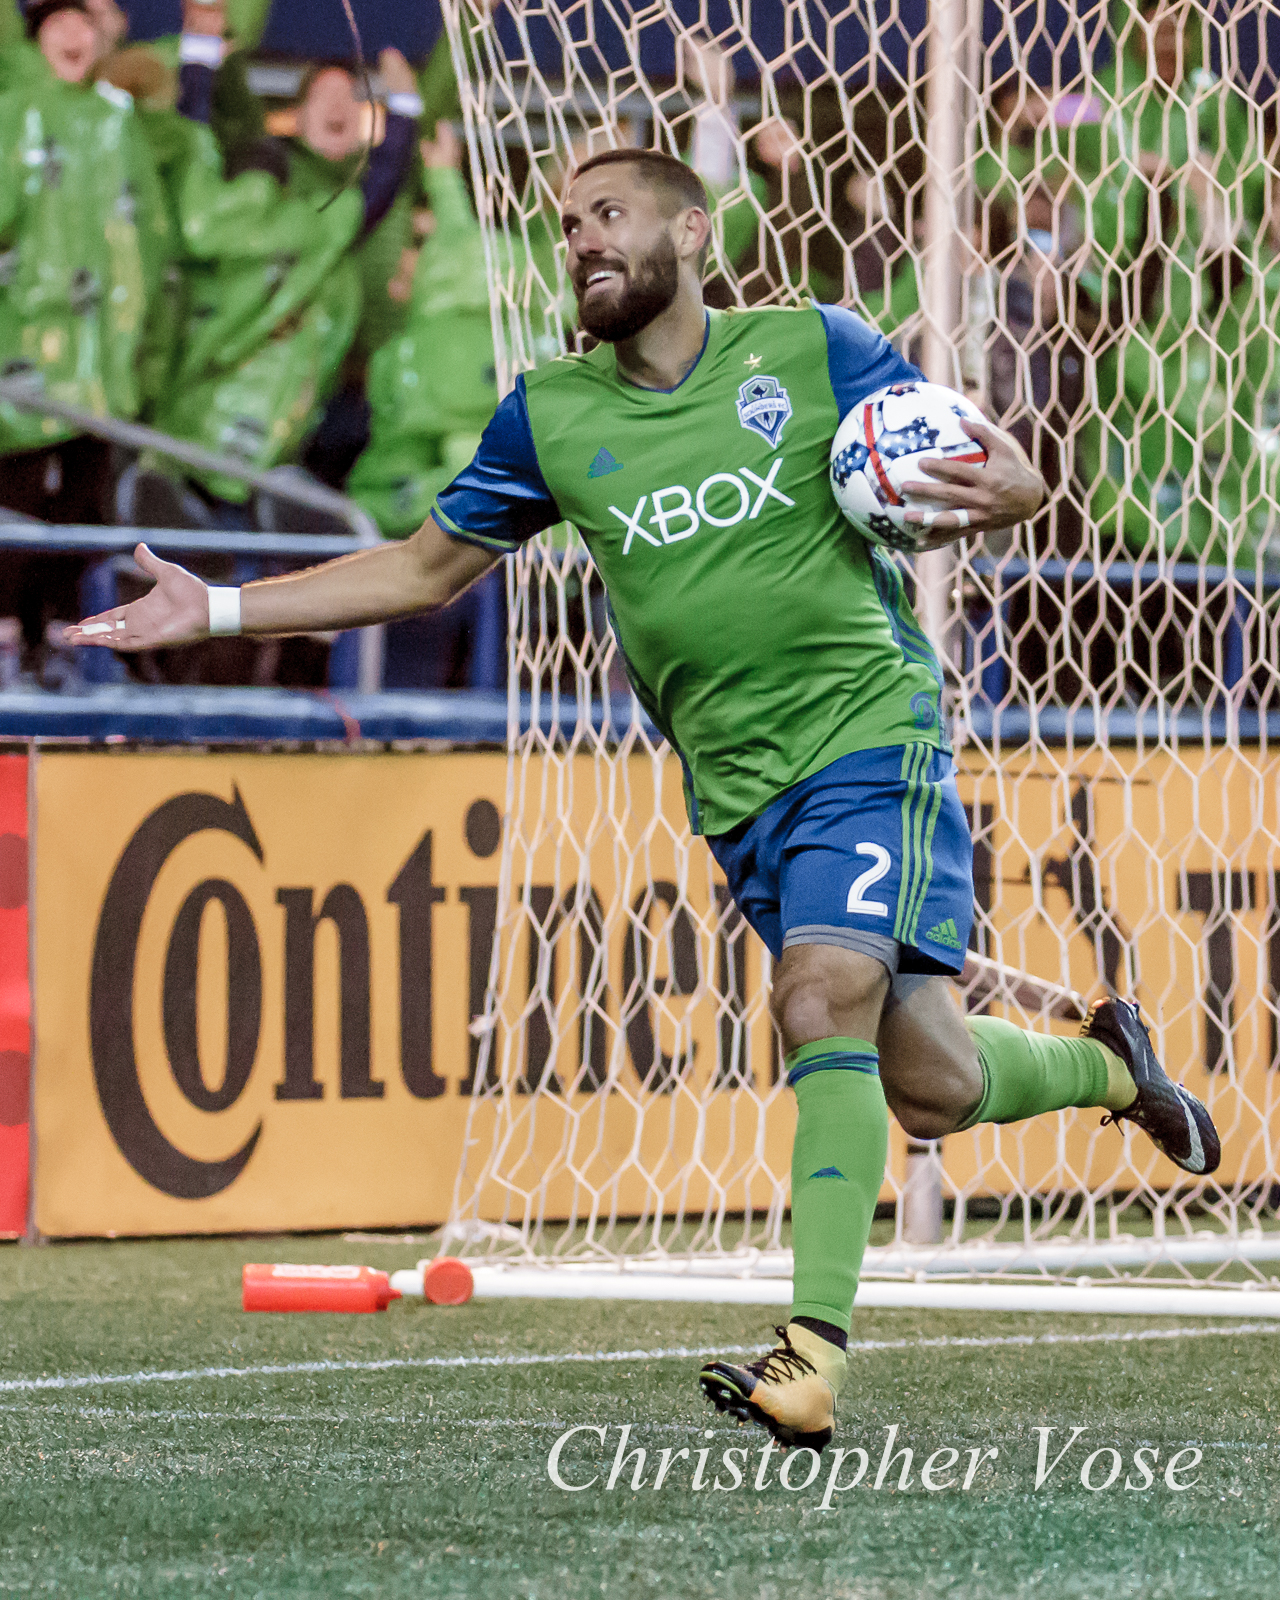 2017-11-02 Clint Dempsey's Second Goal Celebration 1.jpg